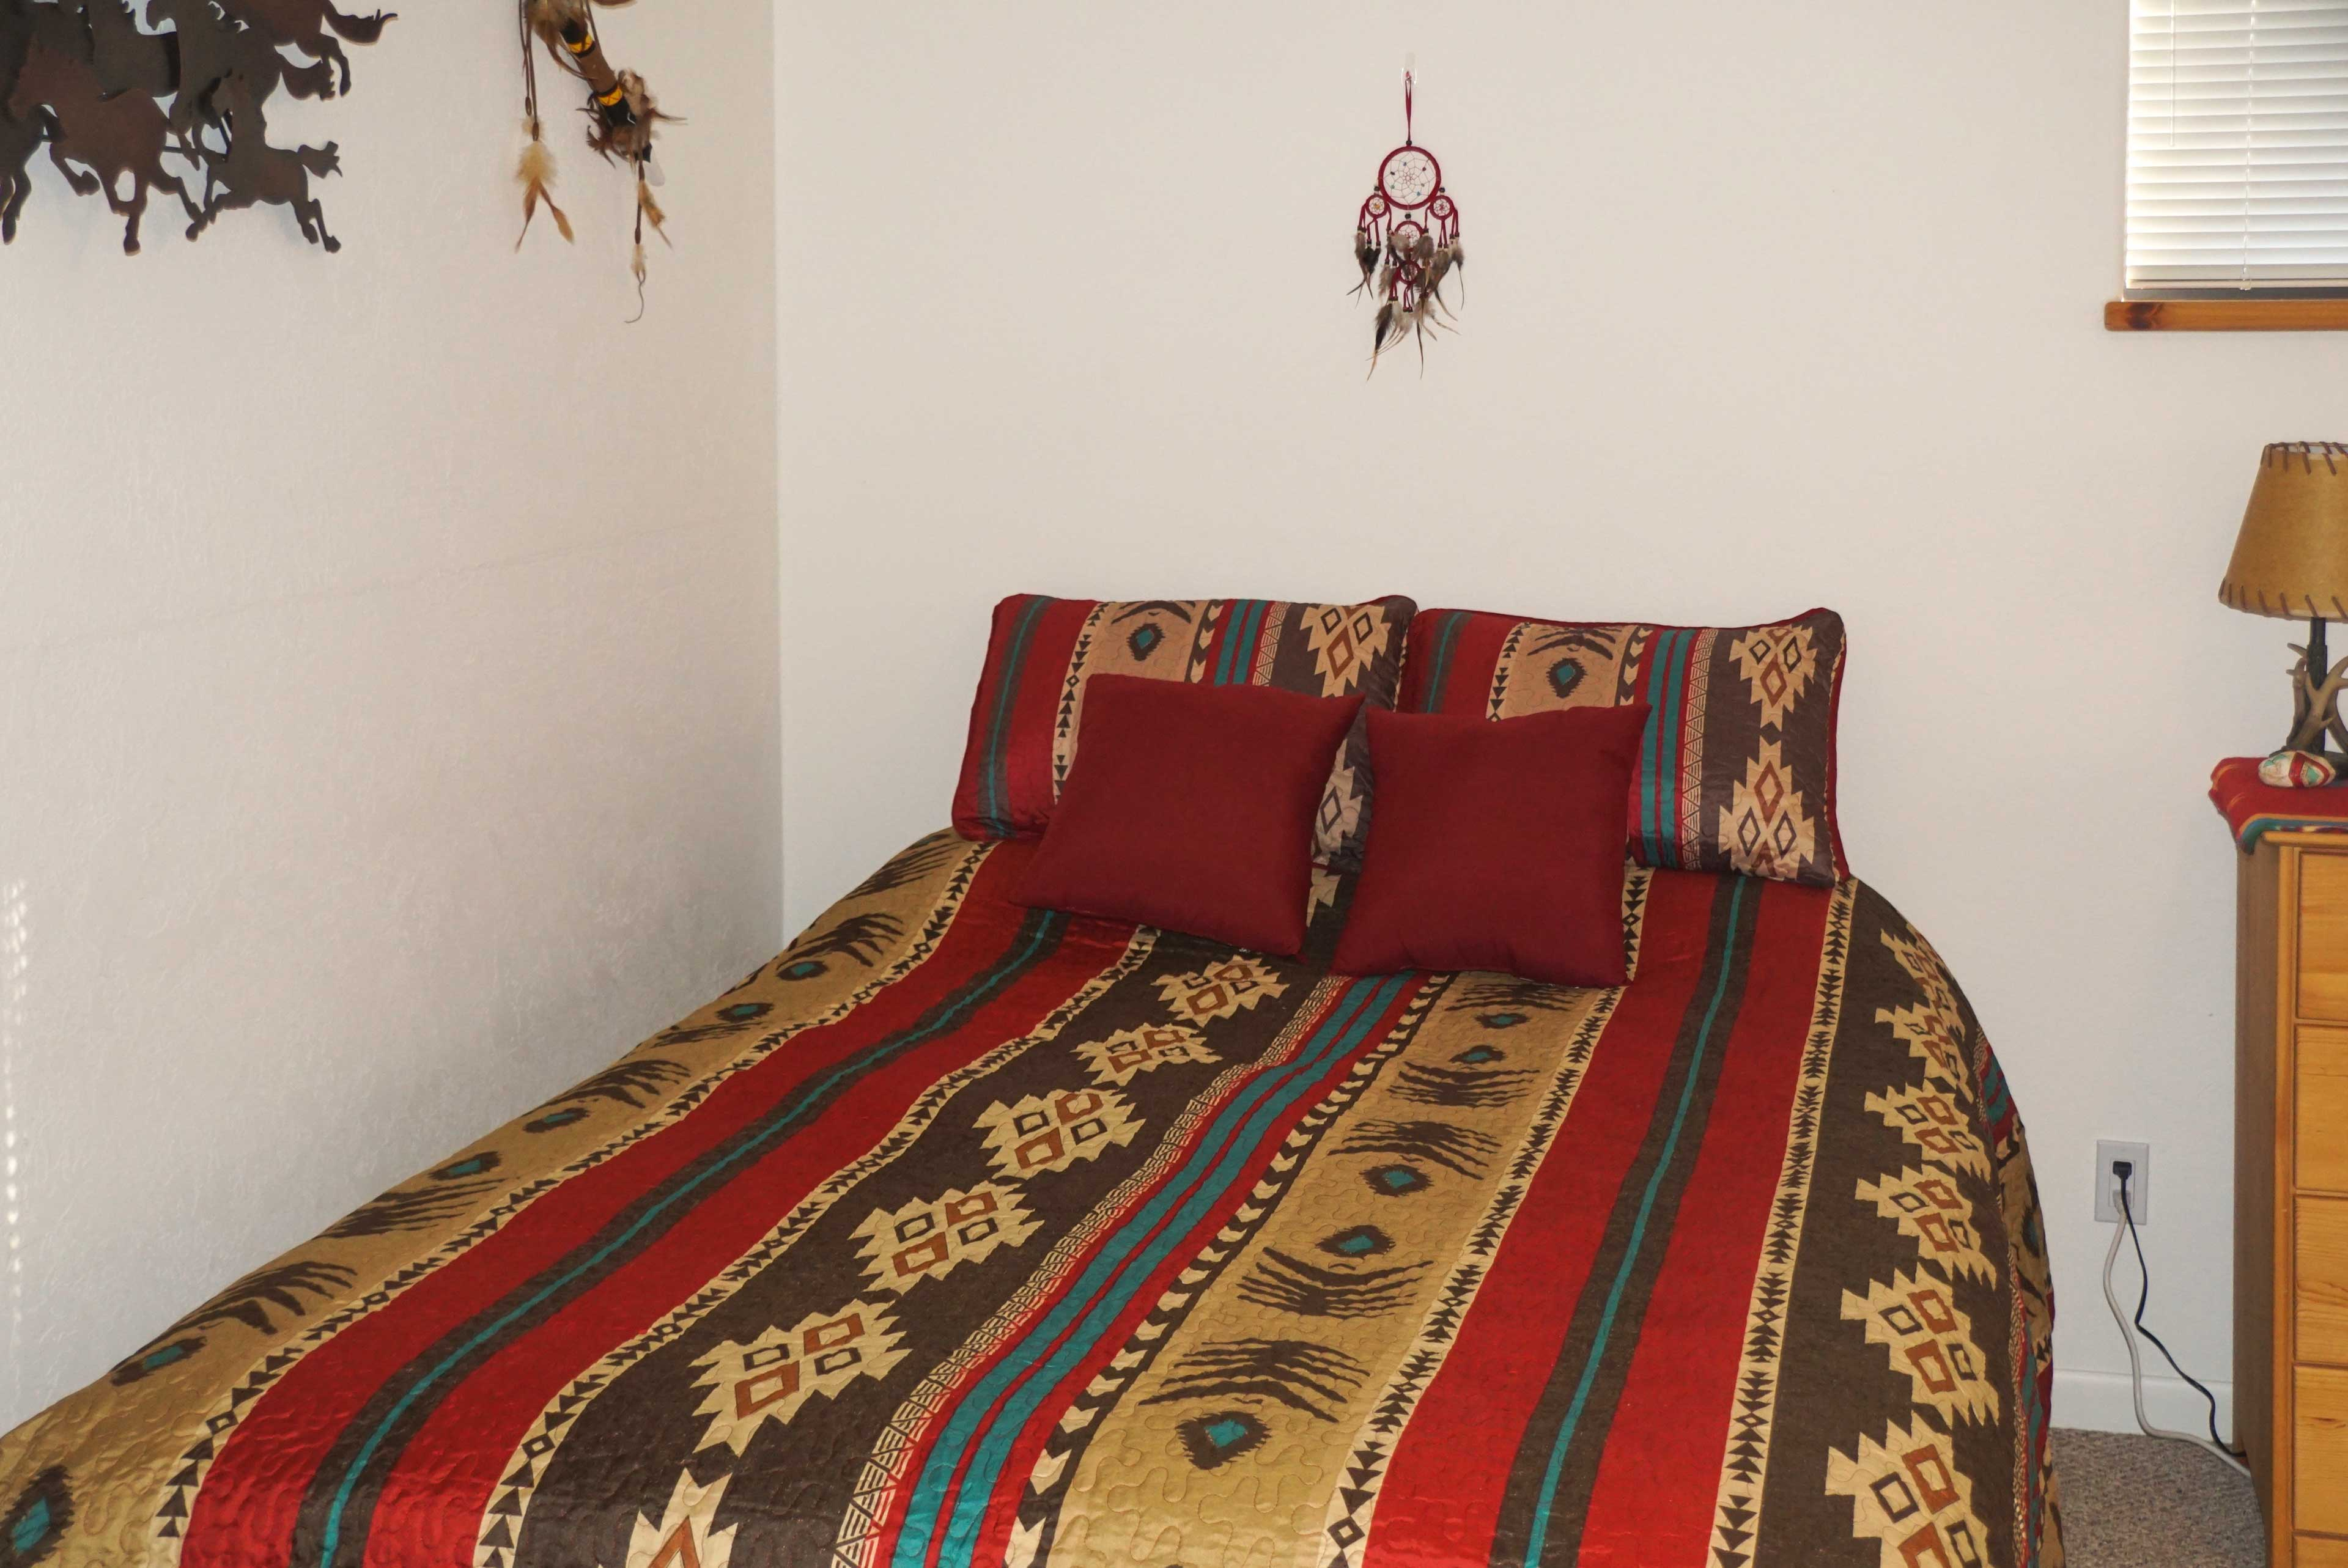 Up to 3 guests can share this 'Wild West' bedroom!